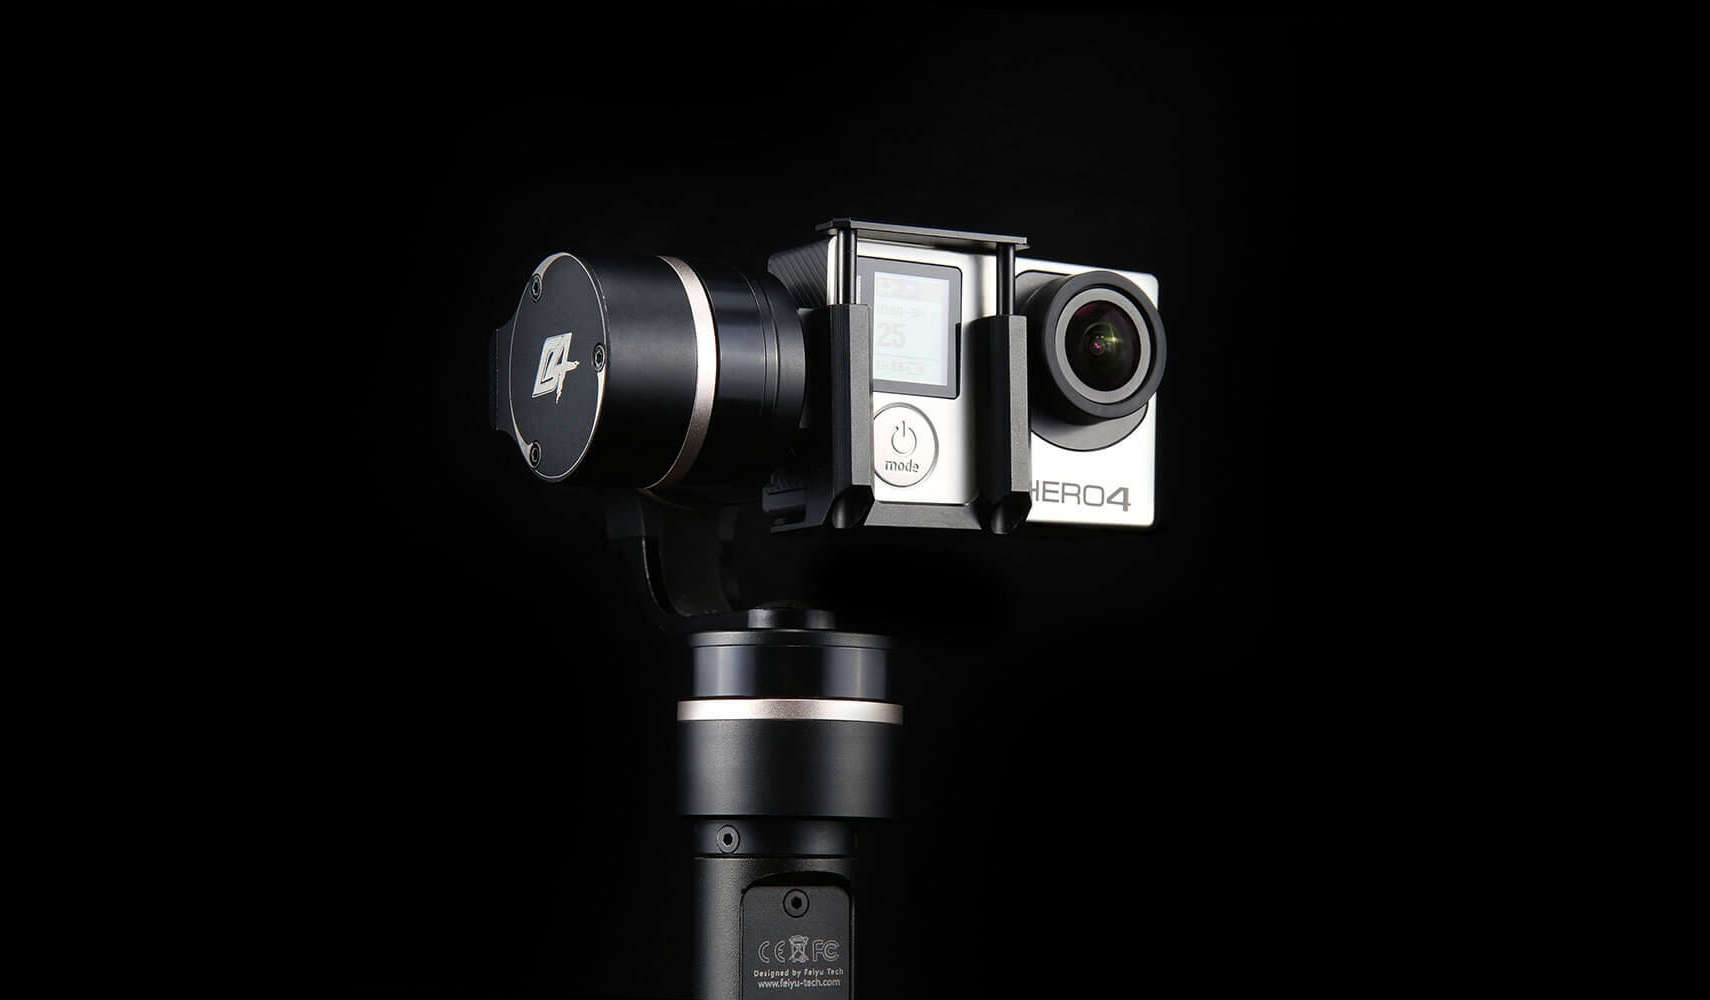 Feiyu G3 Gimbal for GoPro HERO - Review and Customer Support Experience